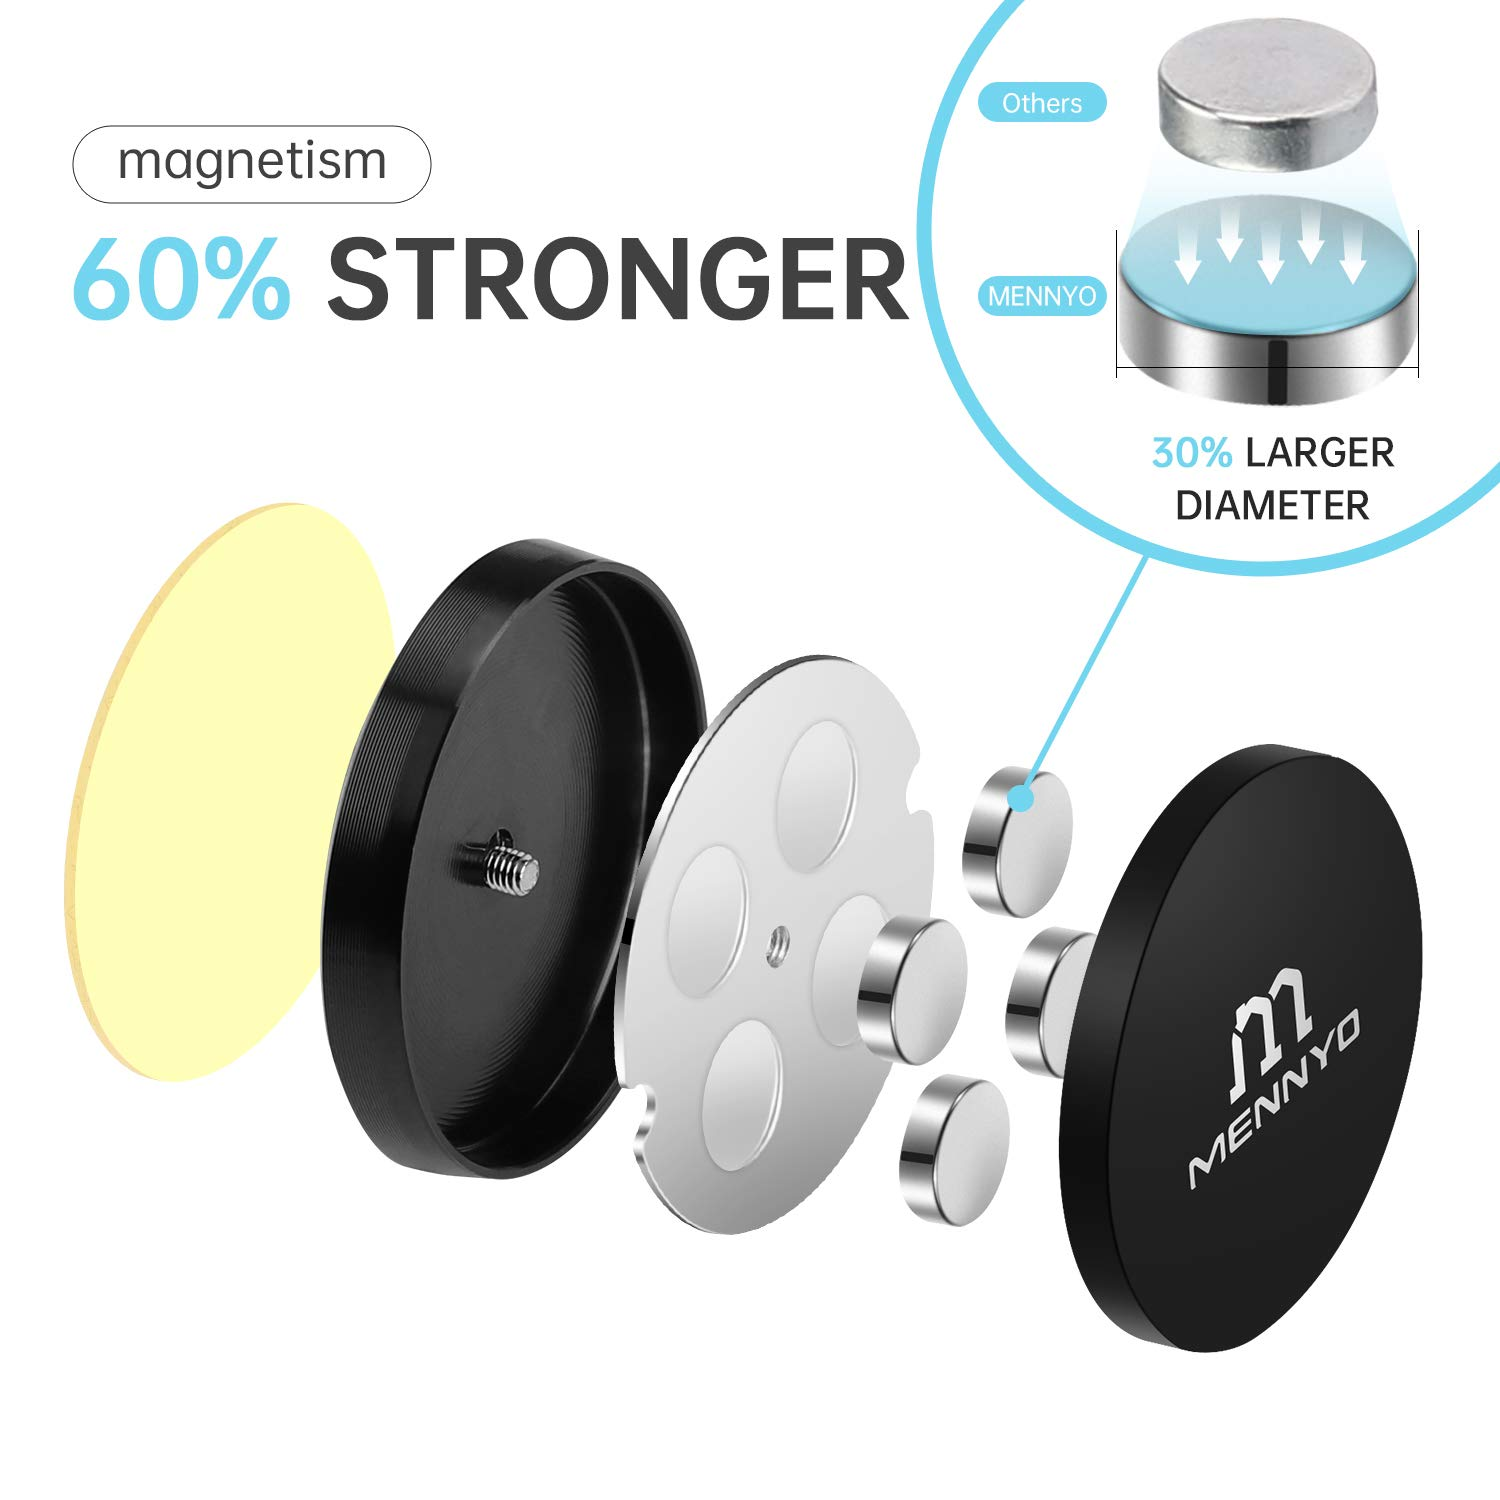 Magnetic Car Mount with Metal Plates - Universal Flat Stick On Magnet Phone Holders Adhesive Tablet Mounts